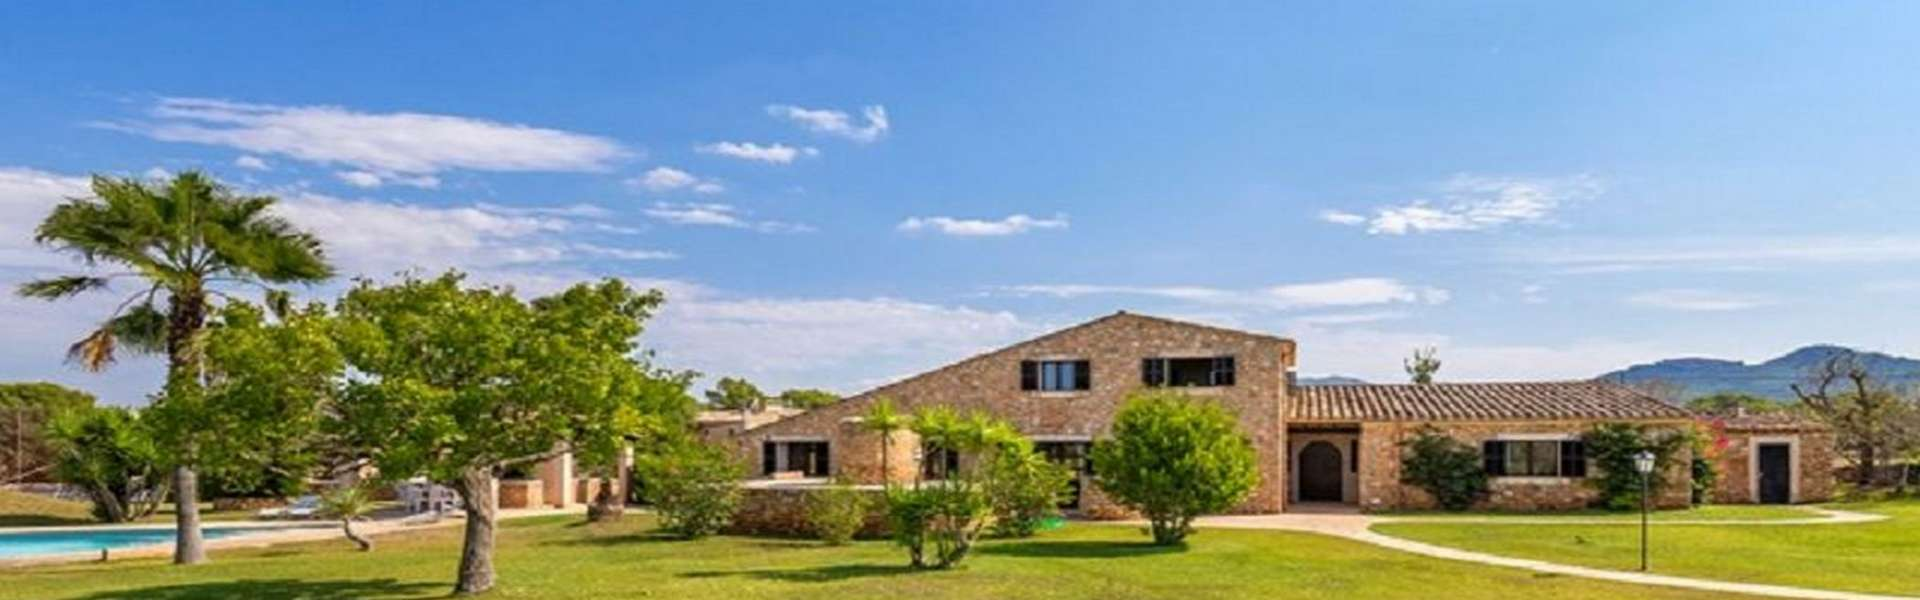 Cas Concos - Wonderful property with pool and tennis court